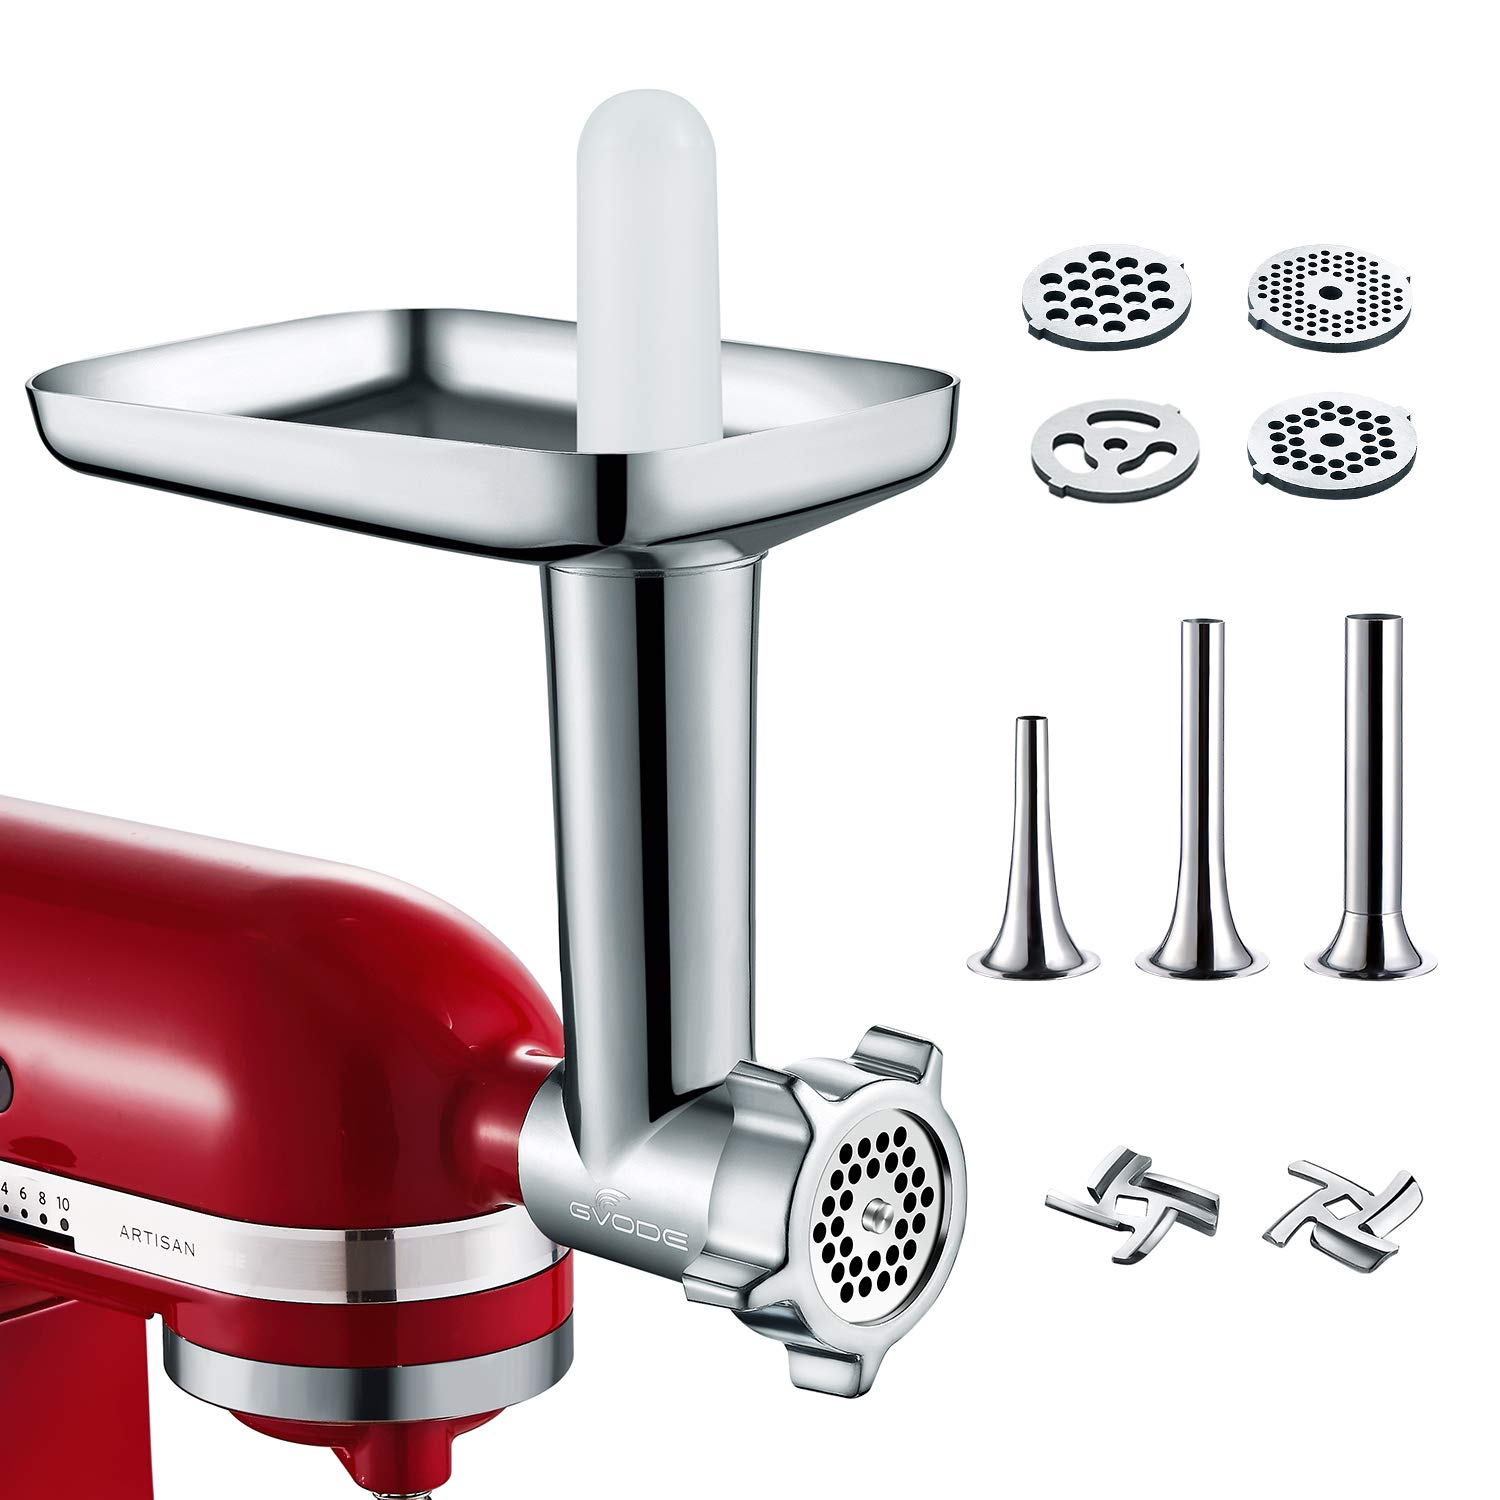 Metal Food Grinder Attachment for KitchenAid Stand Mixer Included 3 Sausage Stuffer Tubes Accessory, Upgrade Design with High Performance by GVODE.